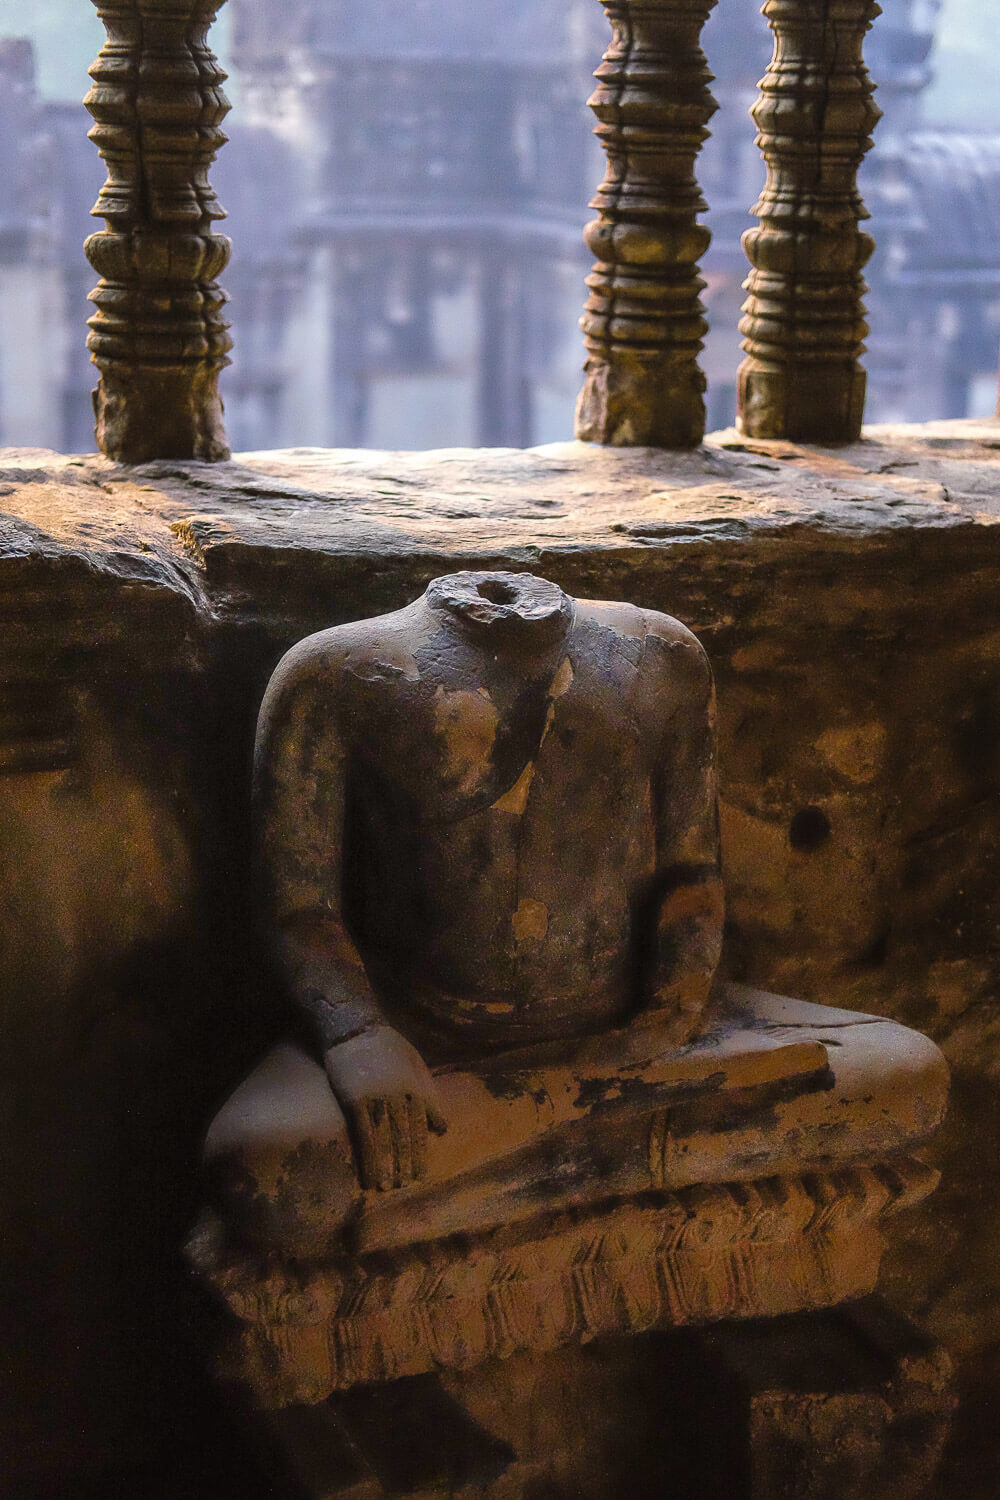 A Buddha statue with it's head removed.     #siemreap #angkorwat #travelguide #travelblog #siemreapitinerary #cambodia #travelphotography #landscapephotography #fujifilm #siemreapprivatetour